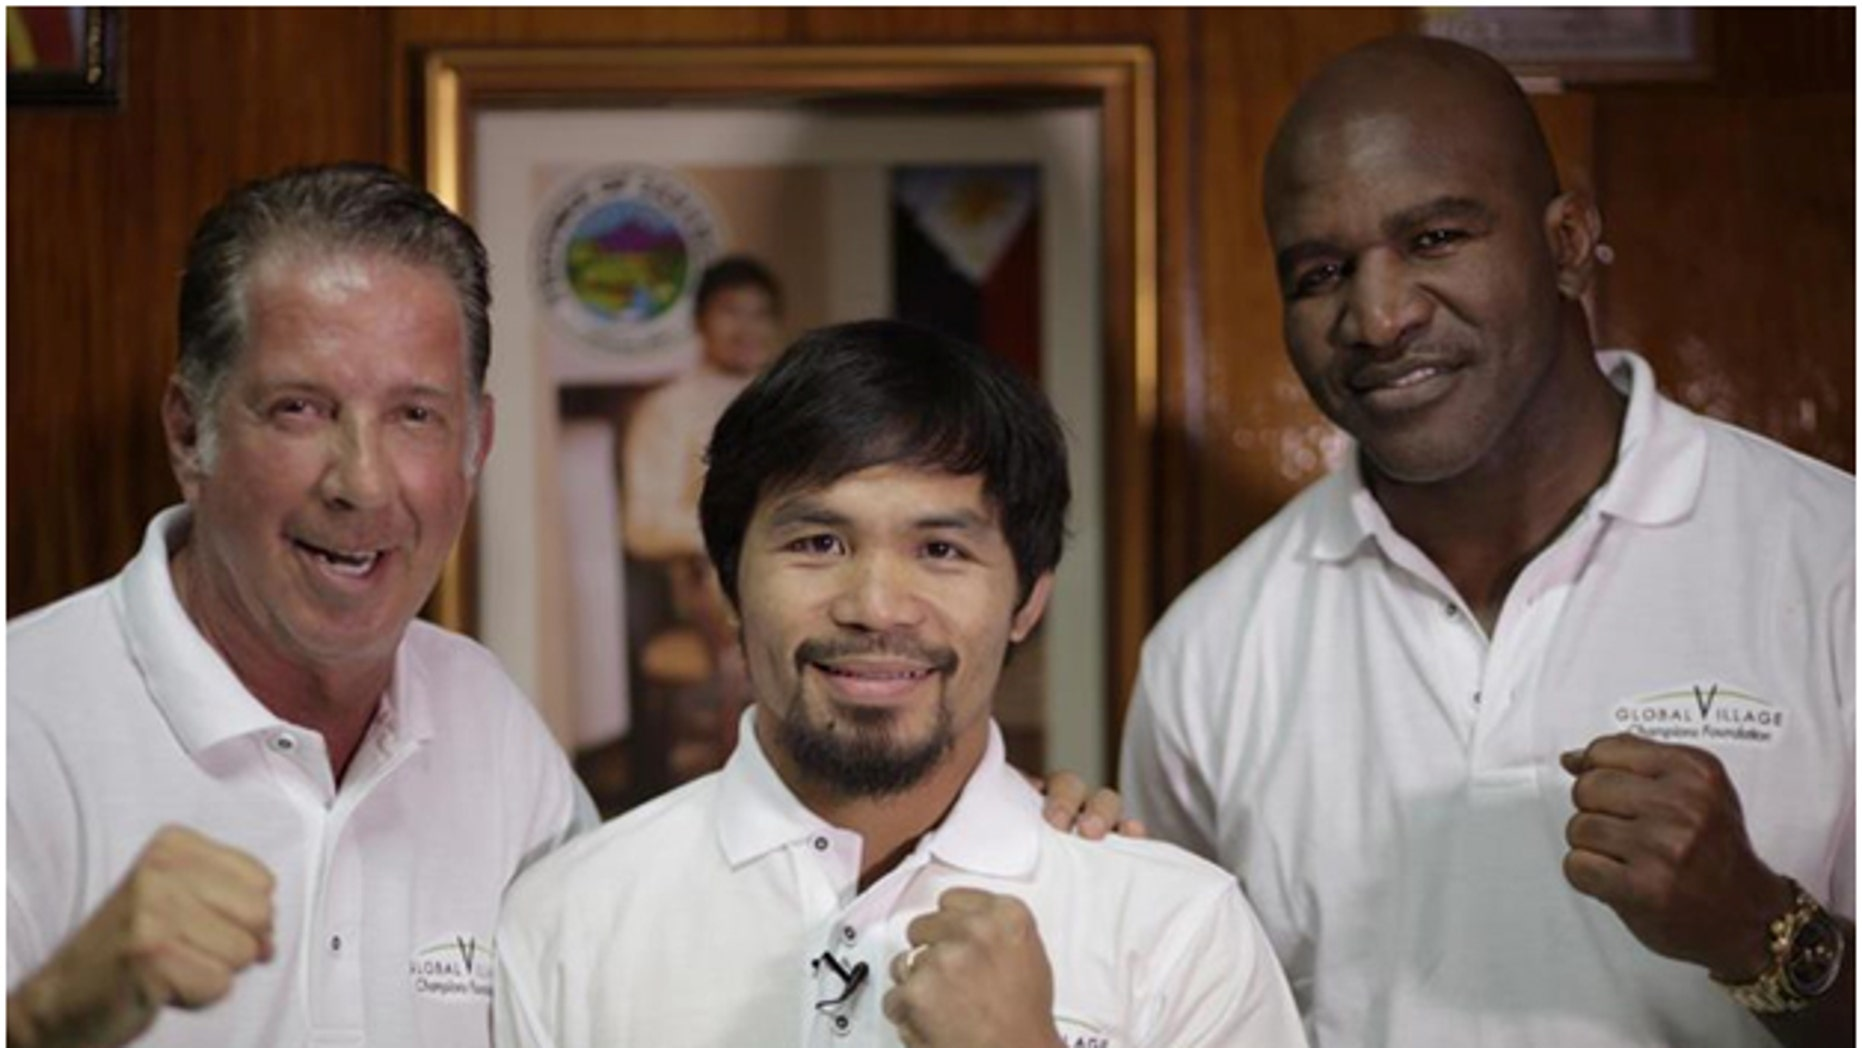 Pictured Yank Barry, Manny Pacquiáo, Evander Holyfield.